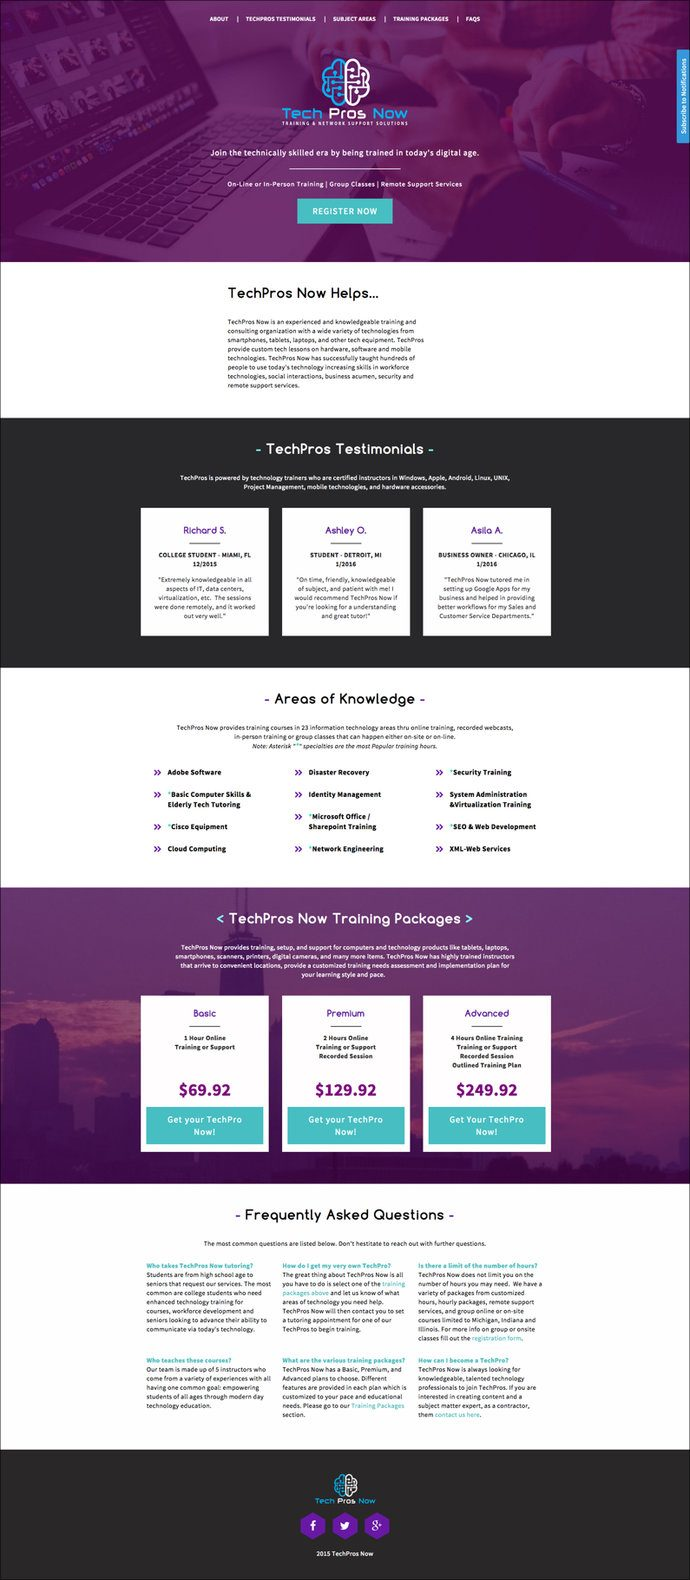 Landing page roundup our top 10 favorite pages from january and what stands out tech pros now uses one of our newest templatesthe event series landing pageto spectacular effect its a beautiful example of choosing a pronofoot35fo Choice Image